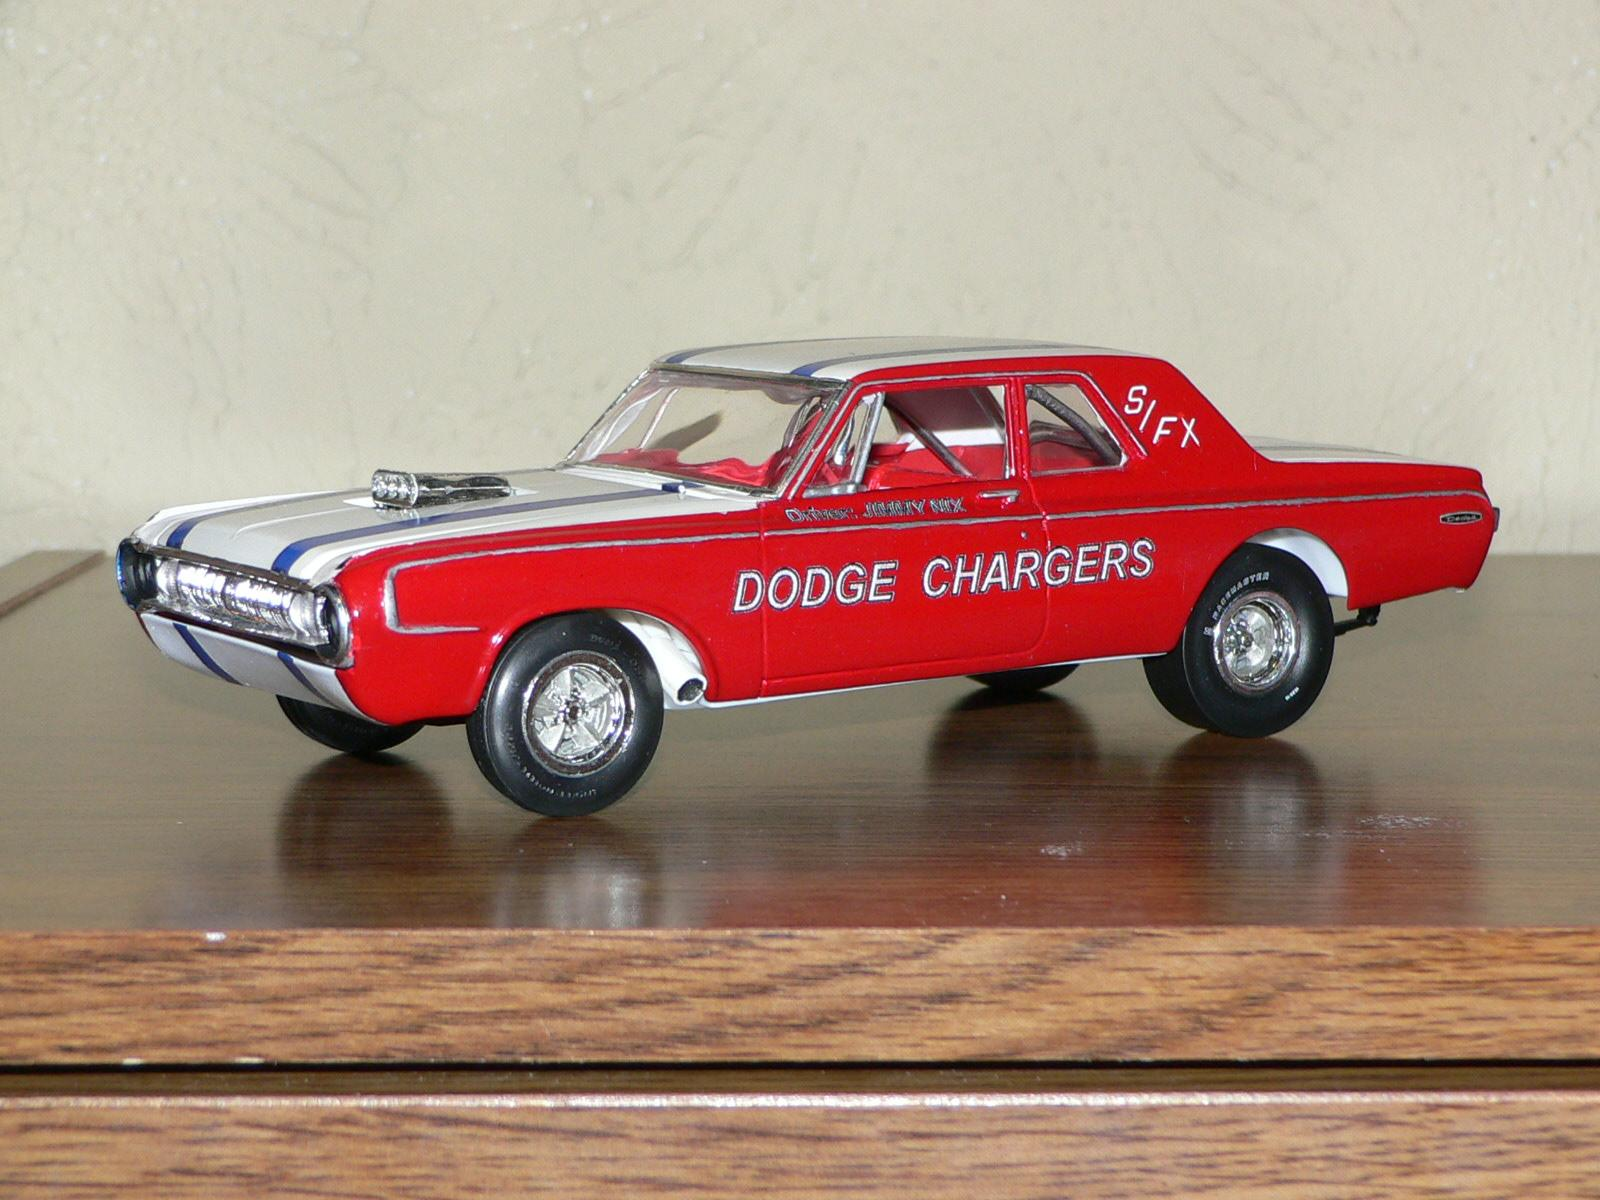 1964 Dodge Chargers Oct 2014 new decals.JPG